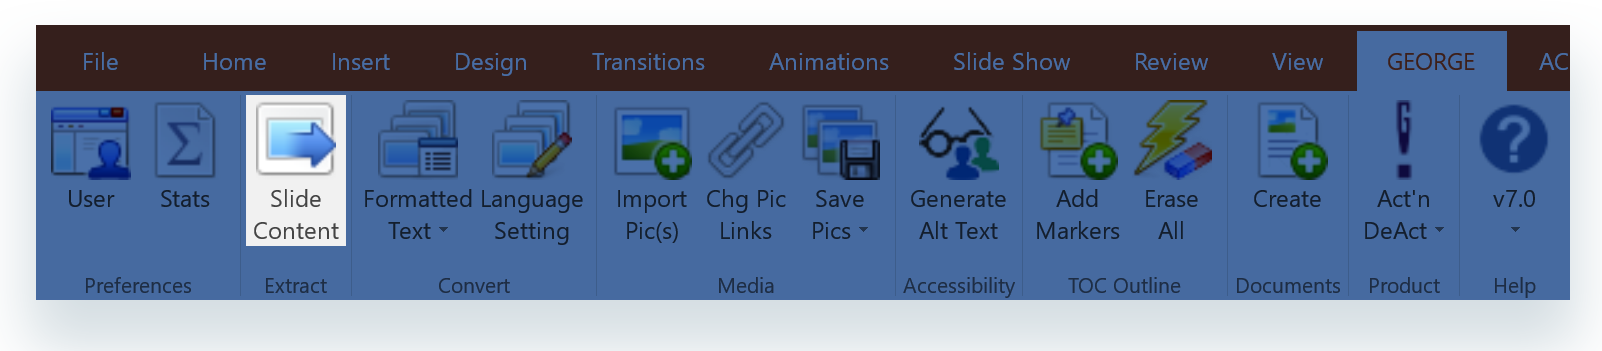 Extract Slide Content button on  george!  ribbon